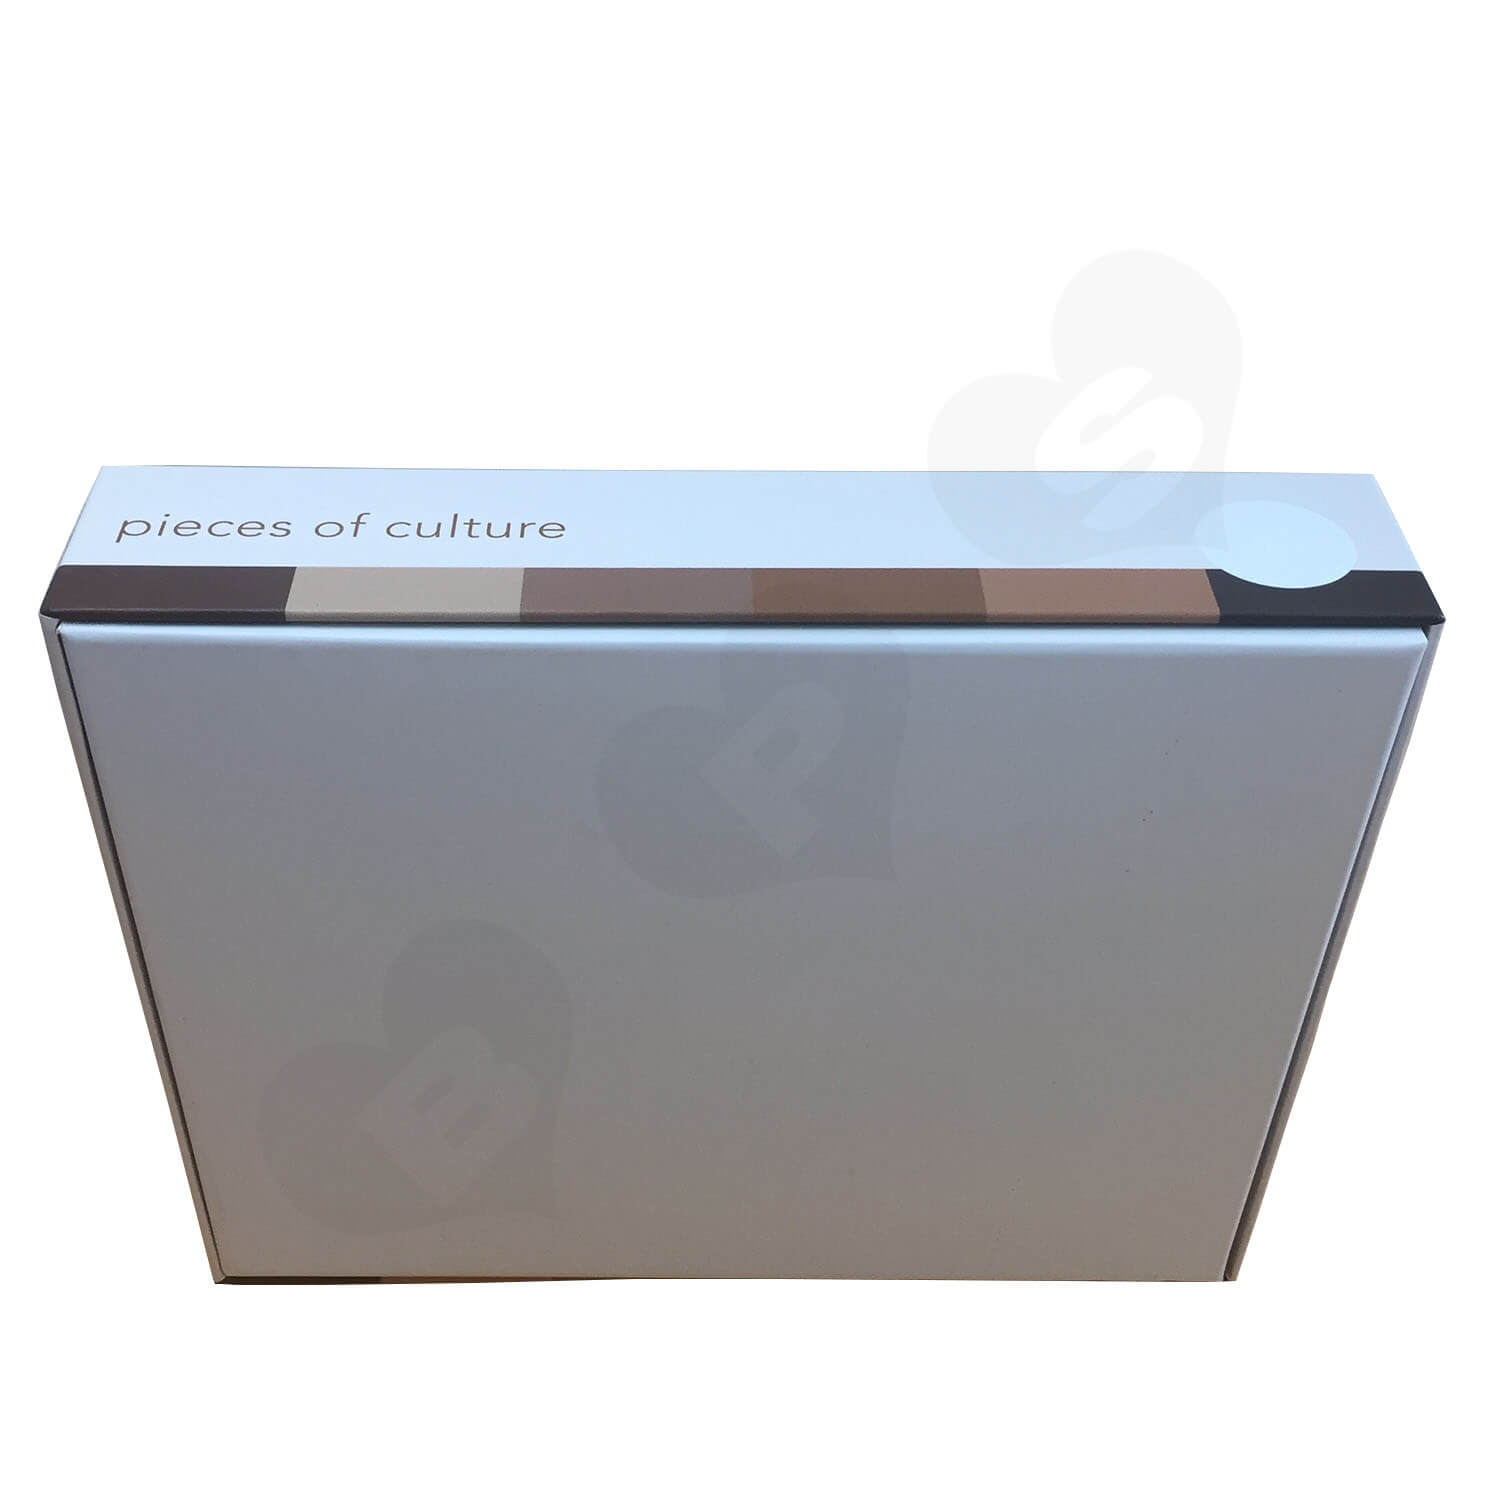 Custom Printed Lift off Lid Puzzle Boxes With PVC Window Side View 5